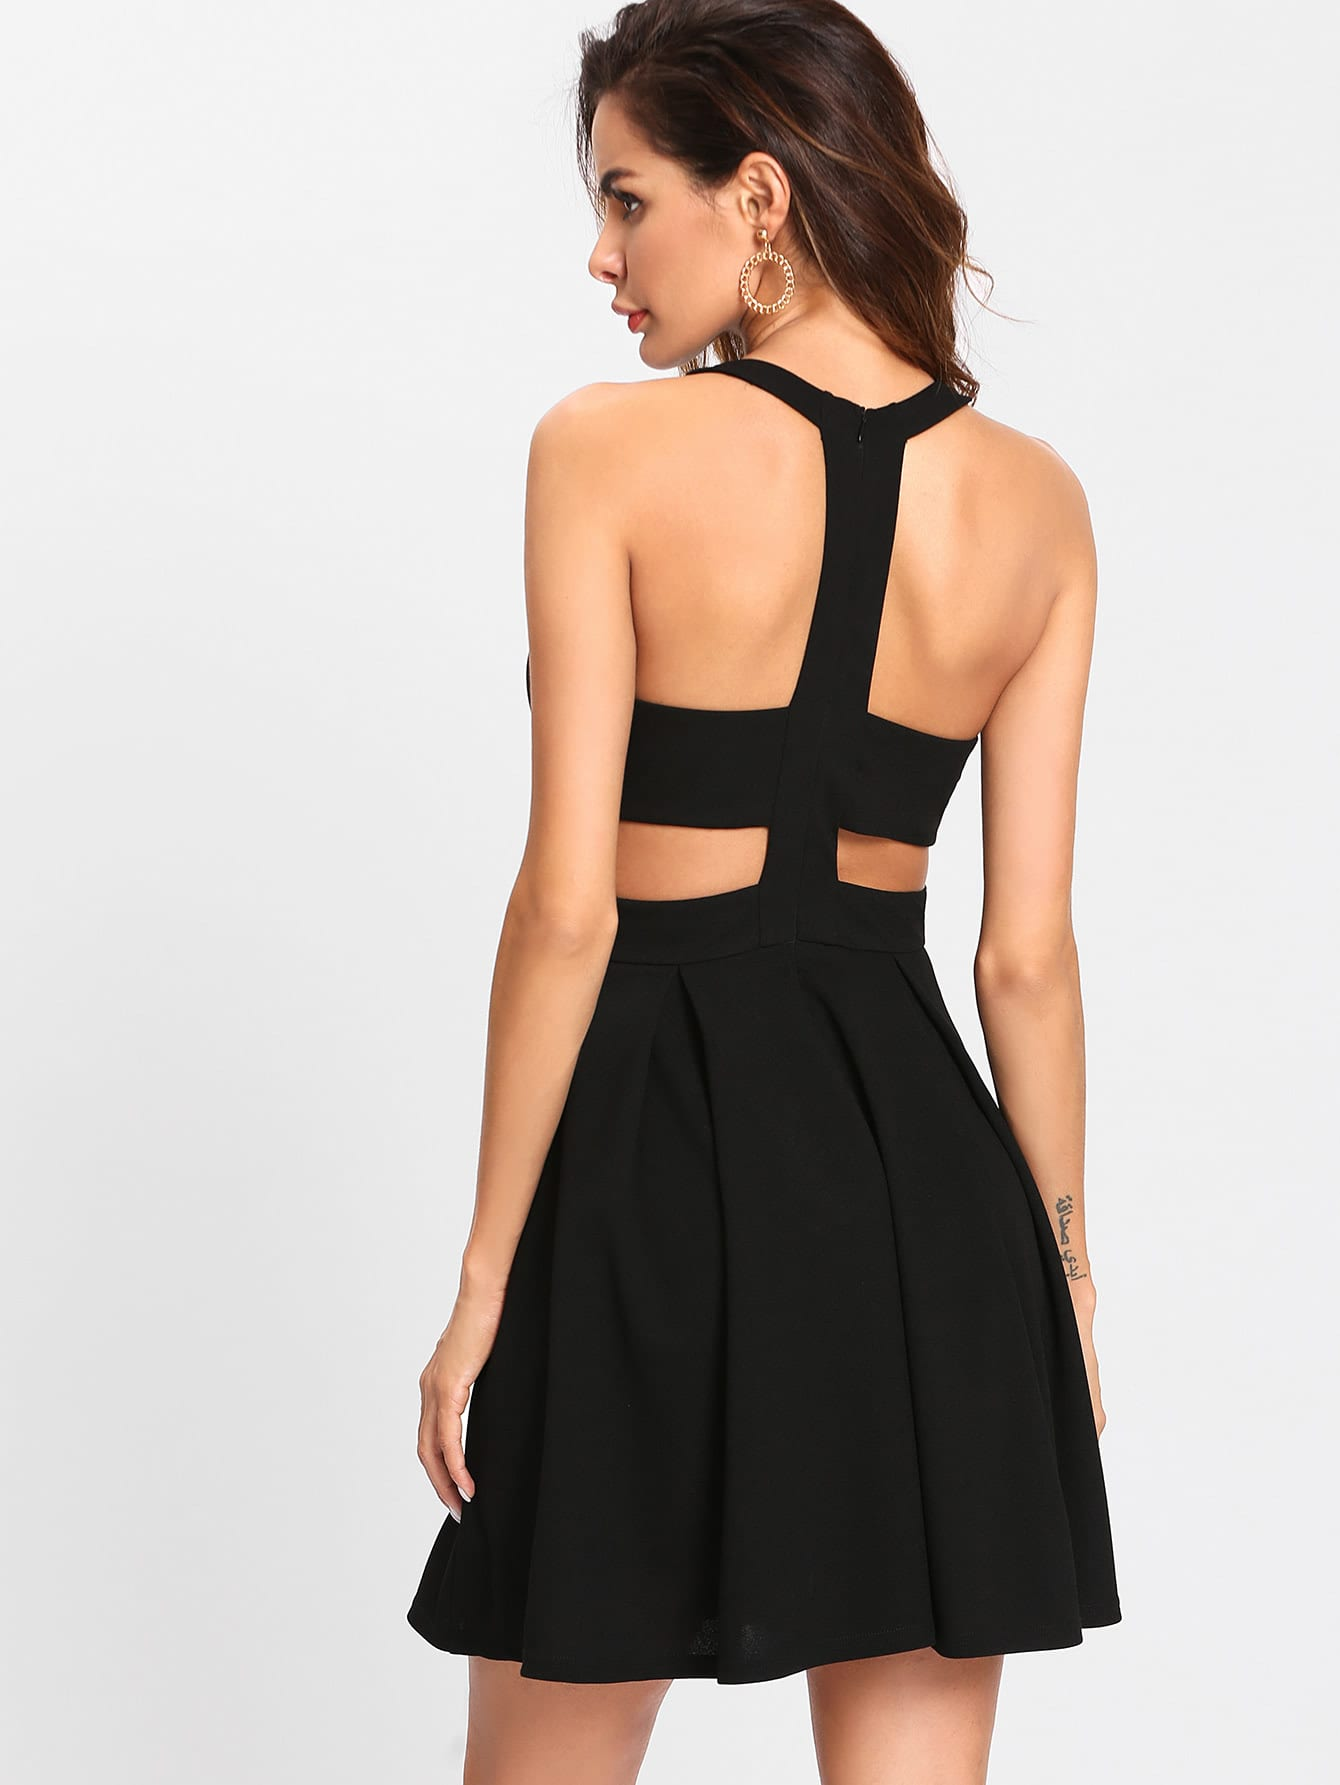 Cut Out Y-Back Box Pleated Dress cut out back plunging kimono dress